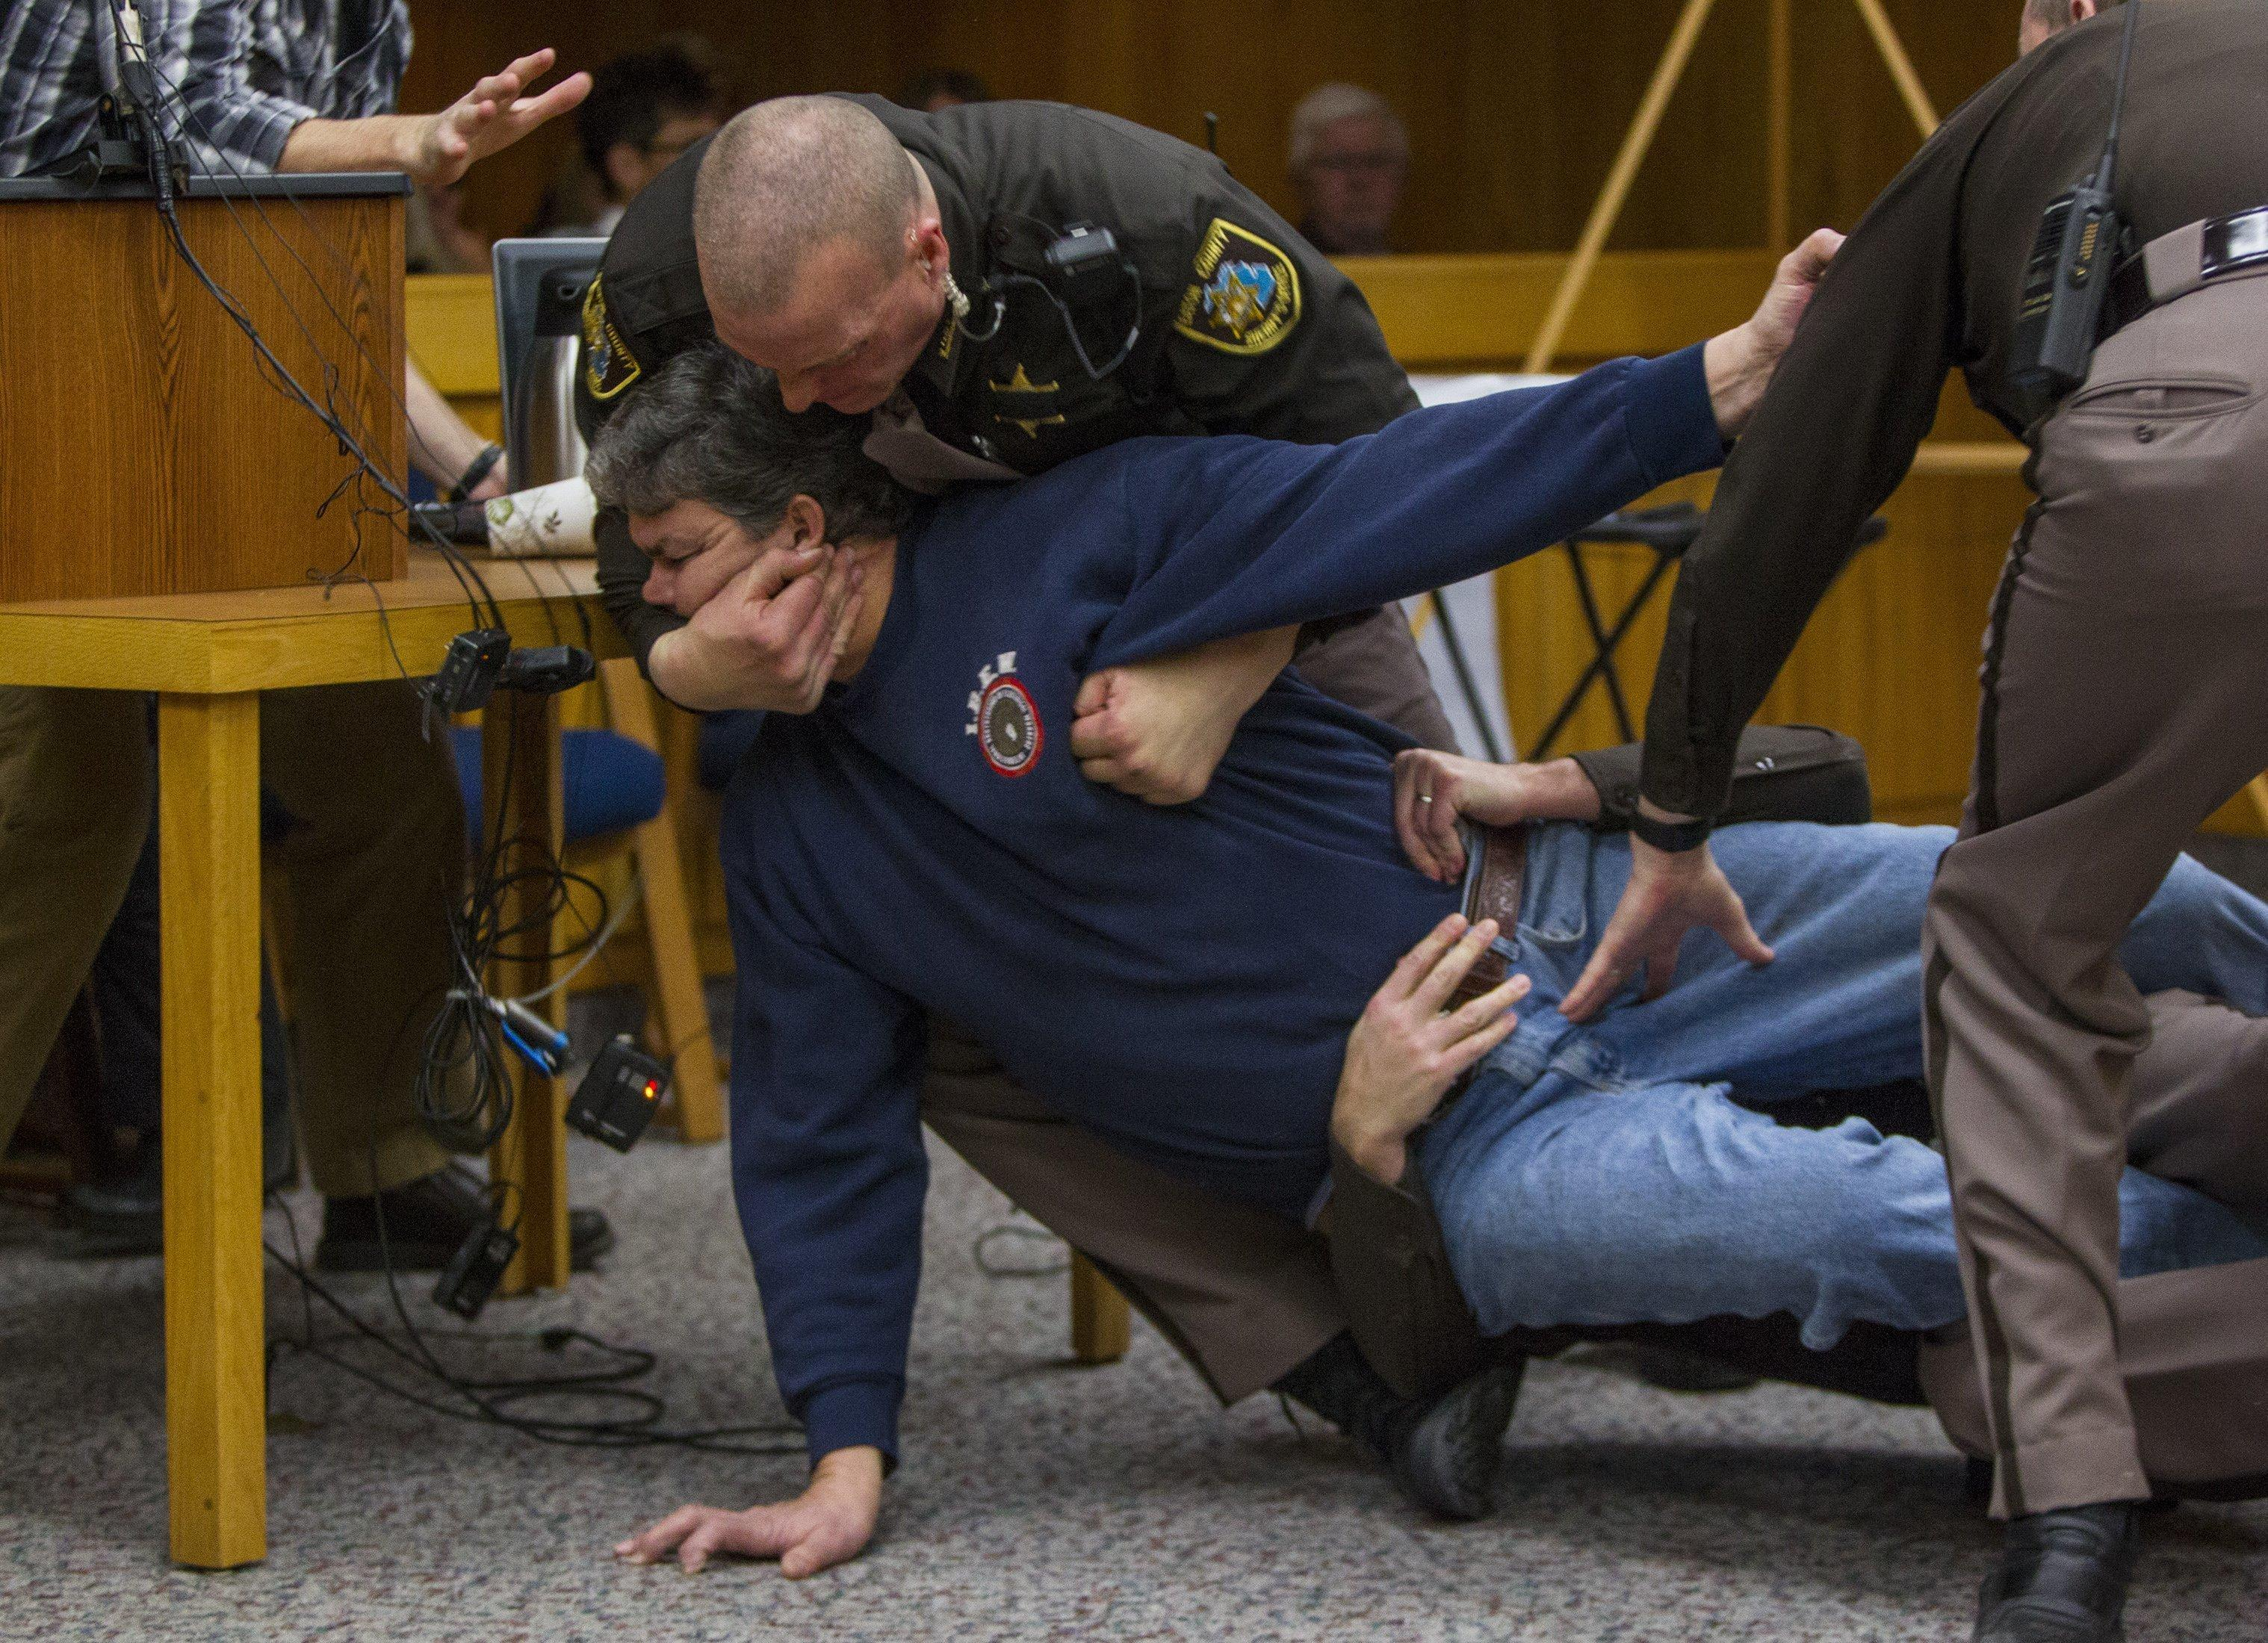 Eaton County Sheriff's deputies restrain Randall Margraves, father of three victims of Larry Nassar, Friday, Feb. 2, 2018, in Eaton County Circuit Court in Charlotte, Mich.  The incident came during the third and final sentencing hearing for Nassar on sexual abuse charges. The charges in this case focus on his work with Twistars, an elite Michigan gymnastics club.   (Cory Morse/The Grand Rapids Press via AP)